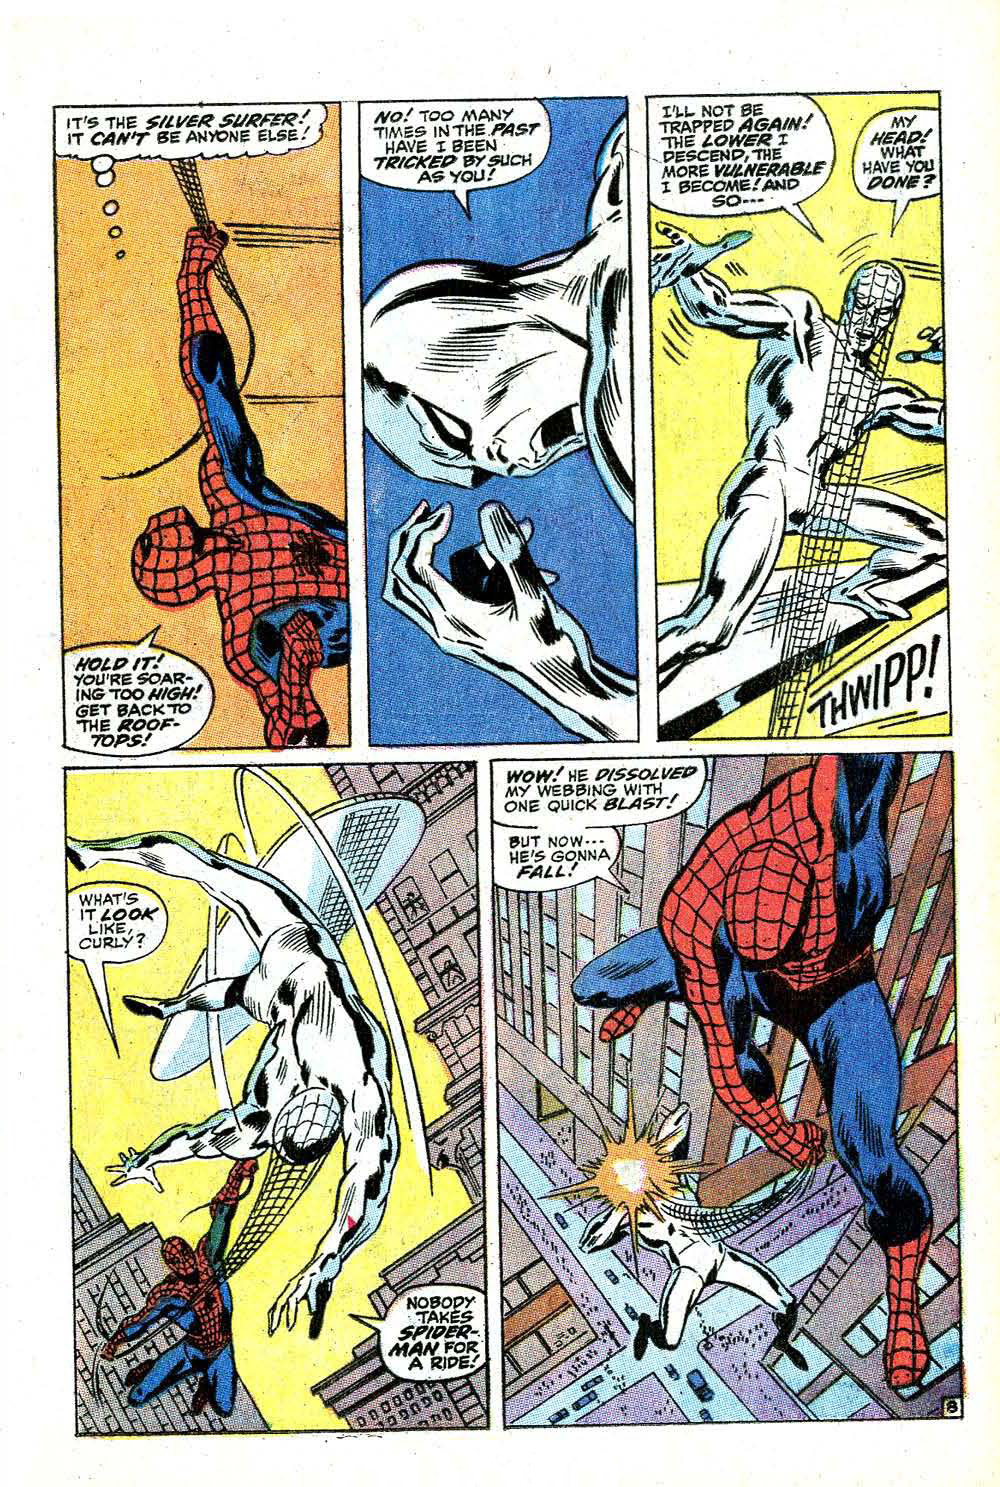 The Bronze Age Of Blogs: The Silver Surfer vs. Spider-Man